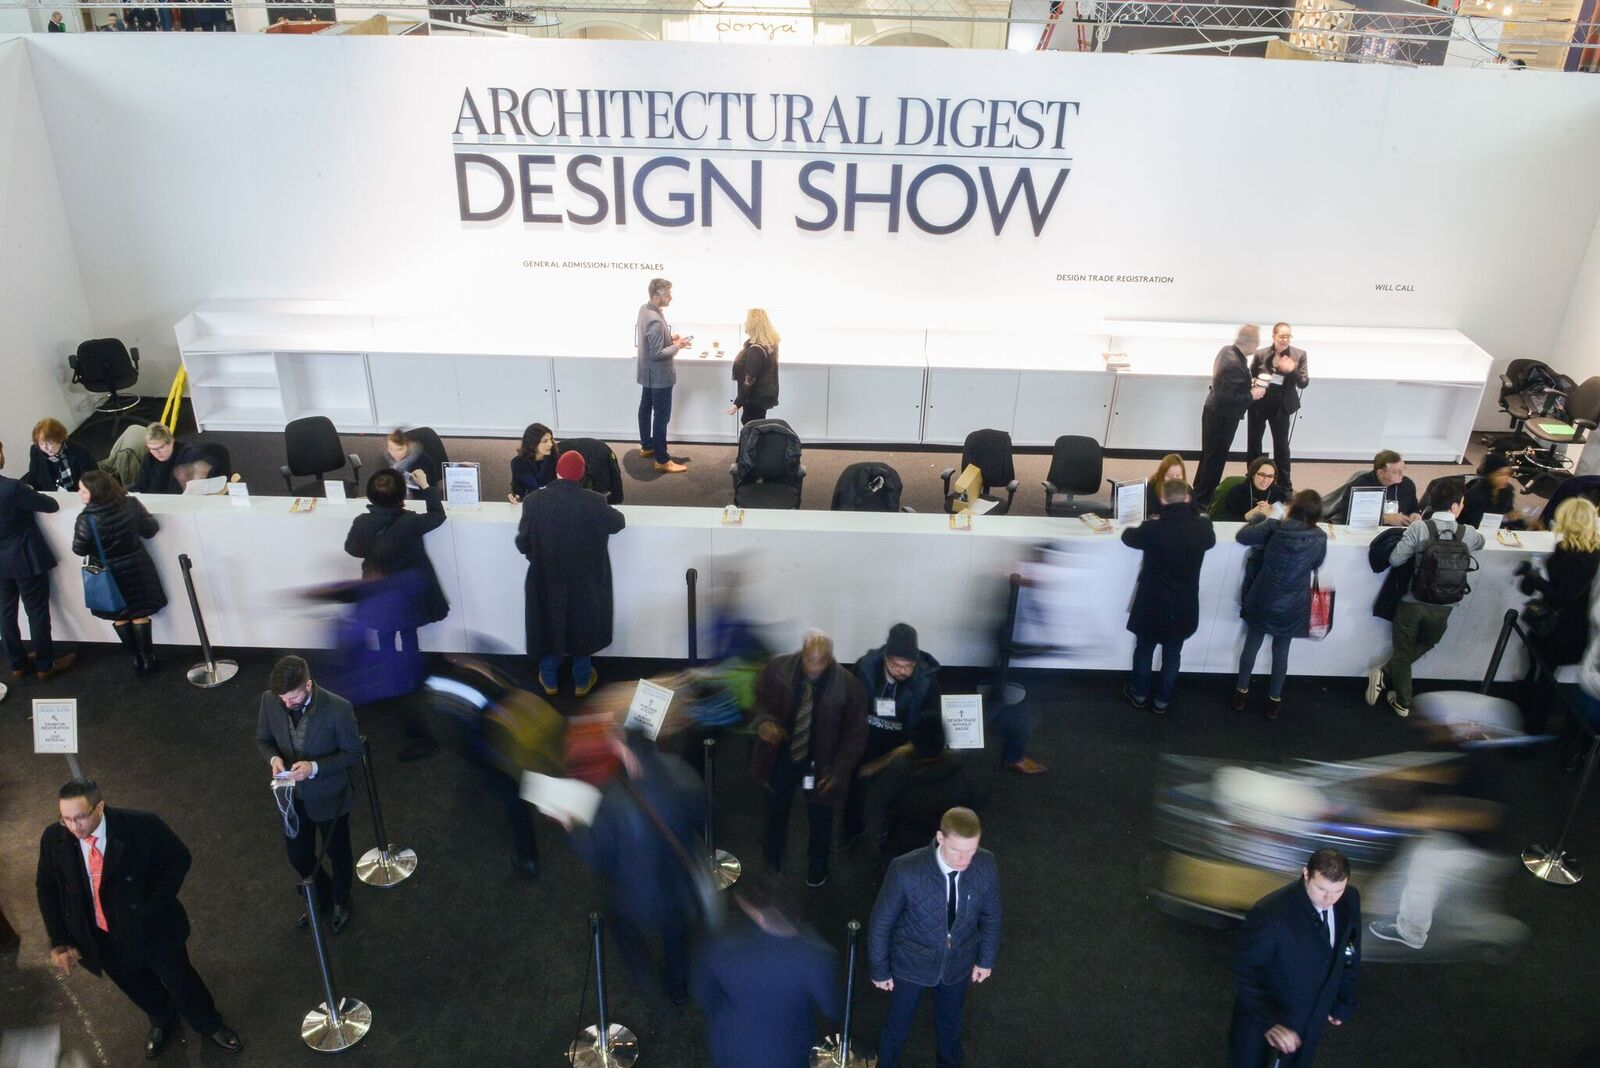 Architectural Digest Design Show, NYC, Mar 22-25